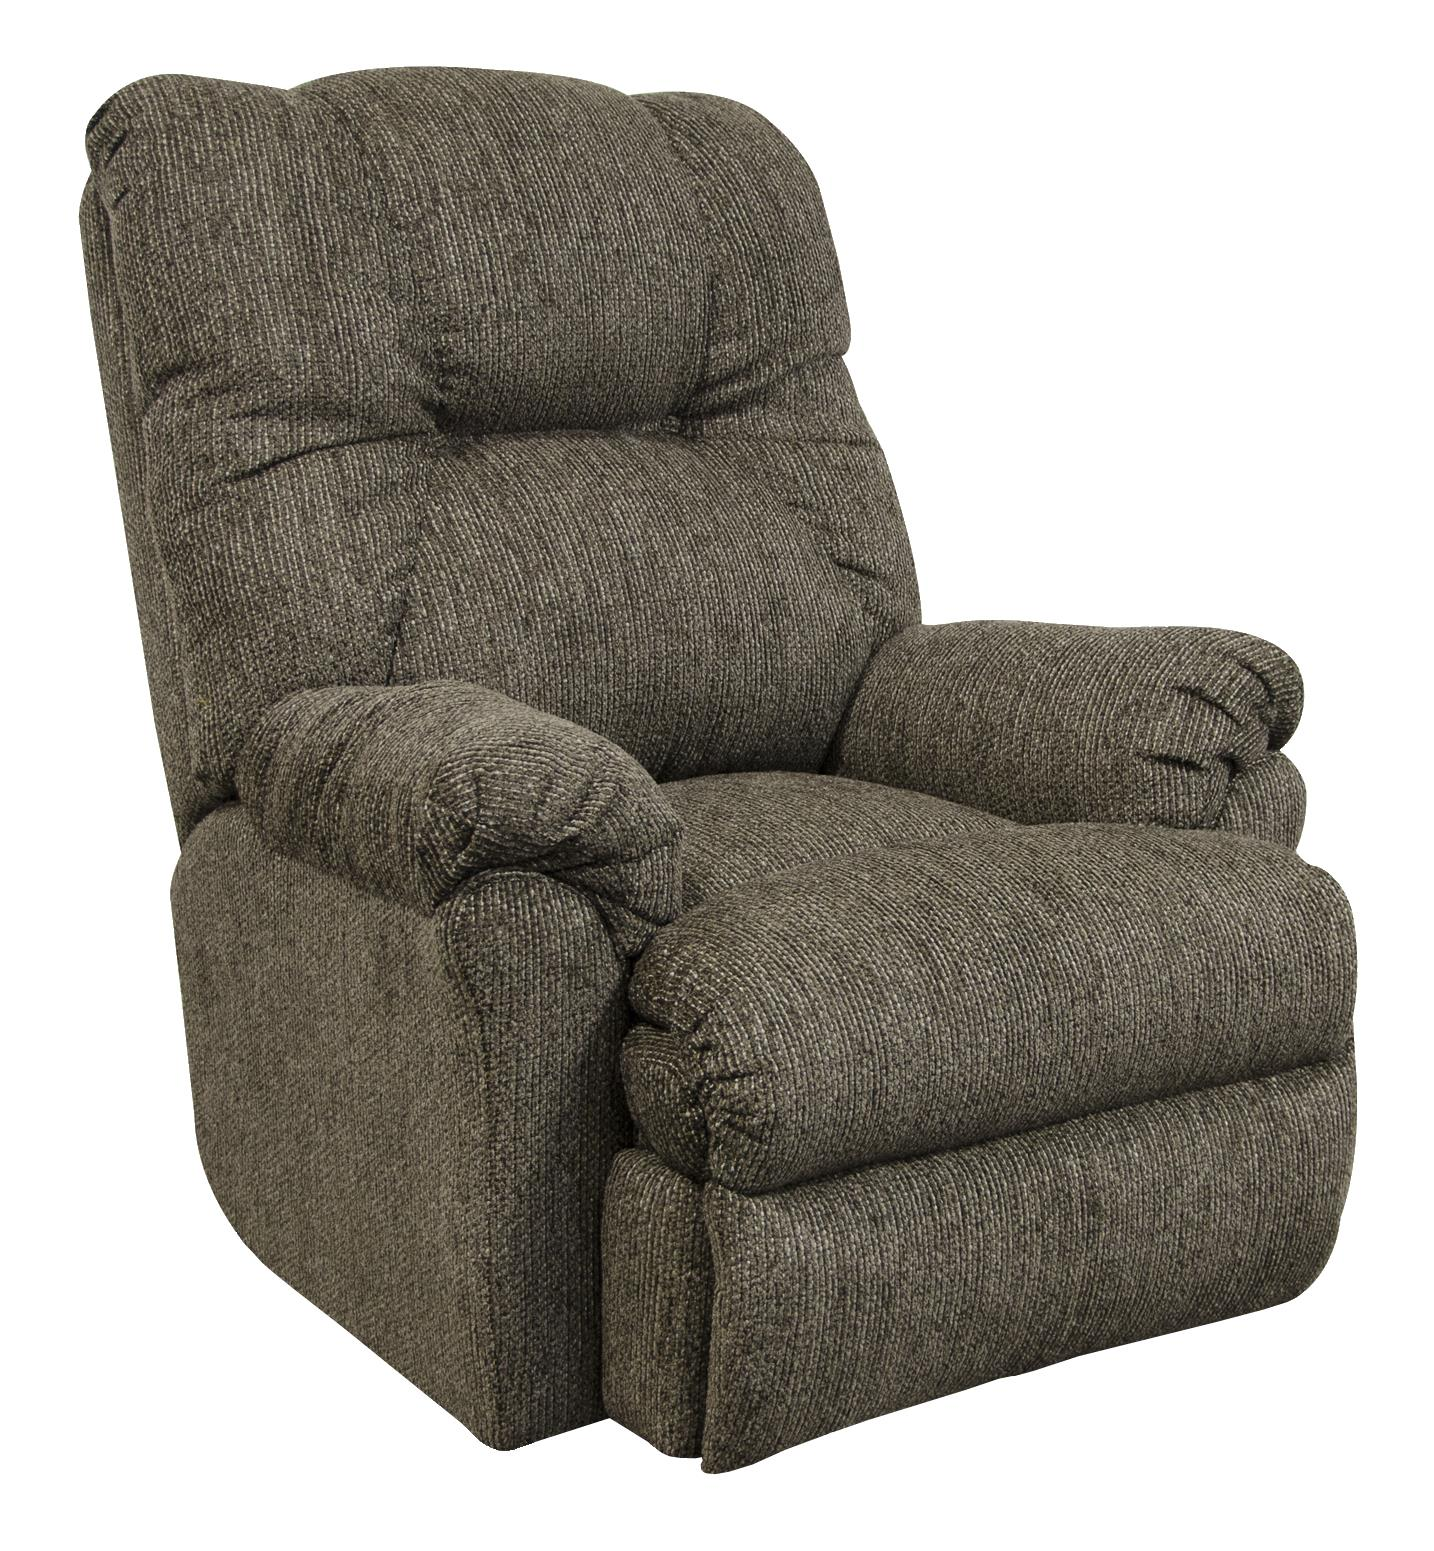 England Rossville Chair - Item Number: 8000-52-6801